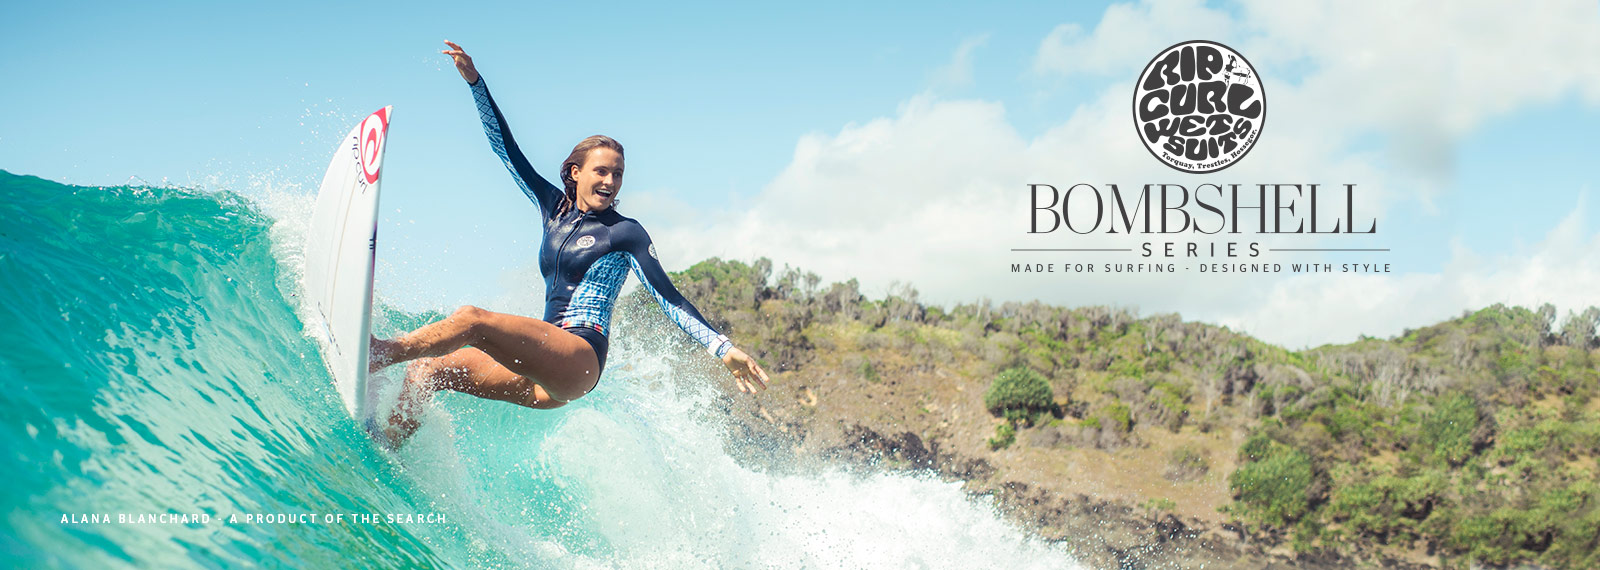 Rip Curl Europe | Shop Wetsuits, Boardshorts and Bikinis | Rip Curl Europe  Online Store